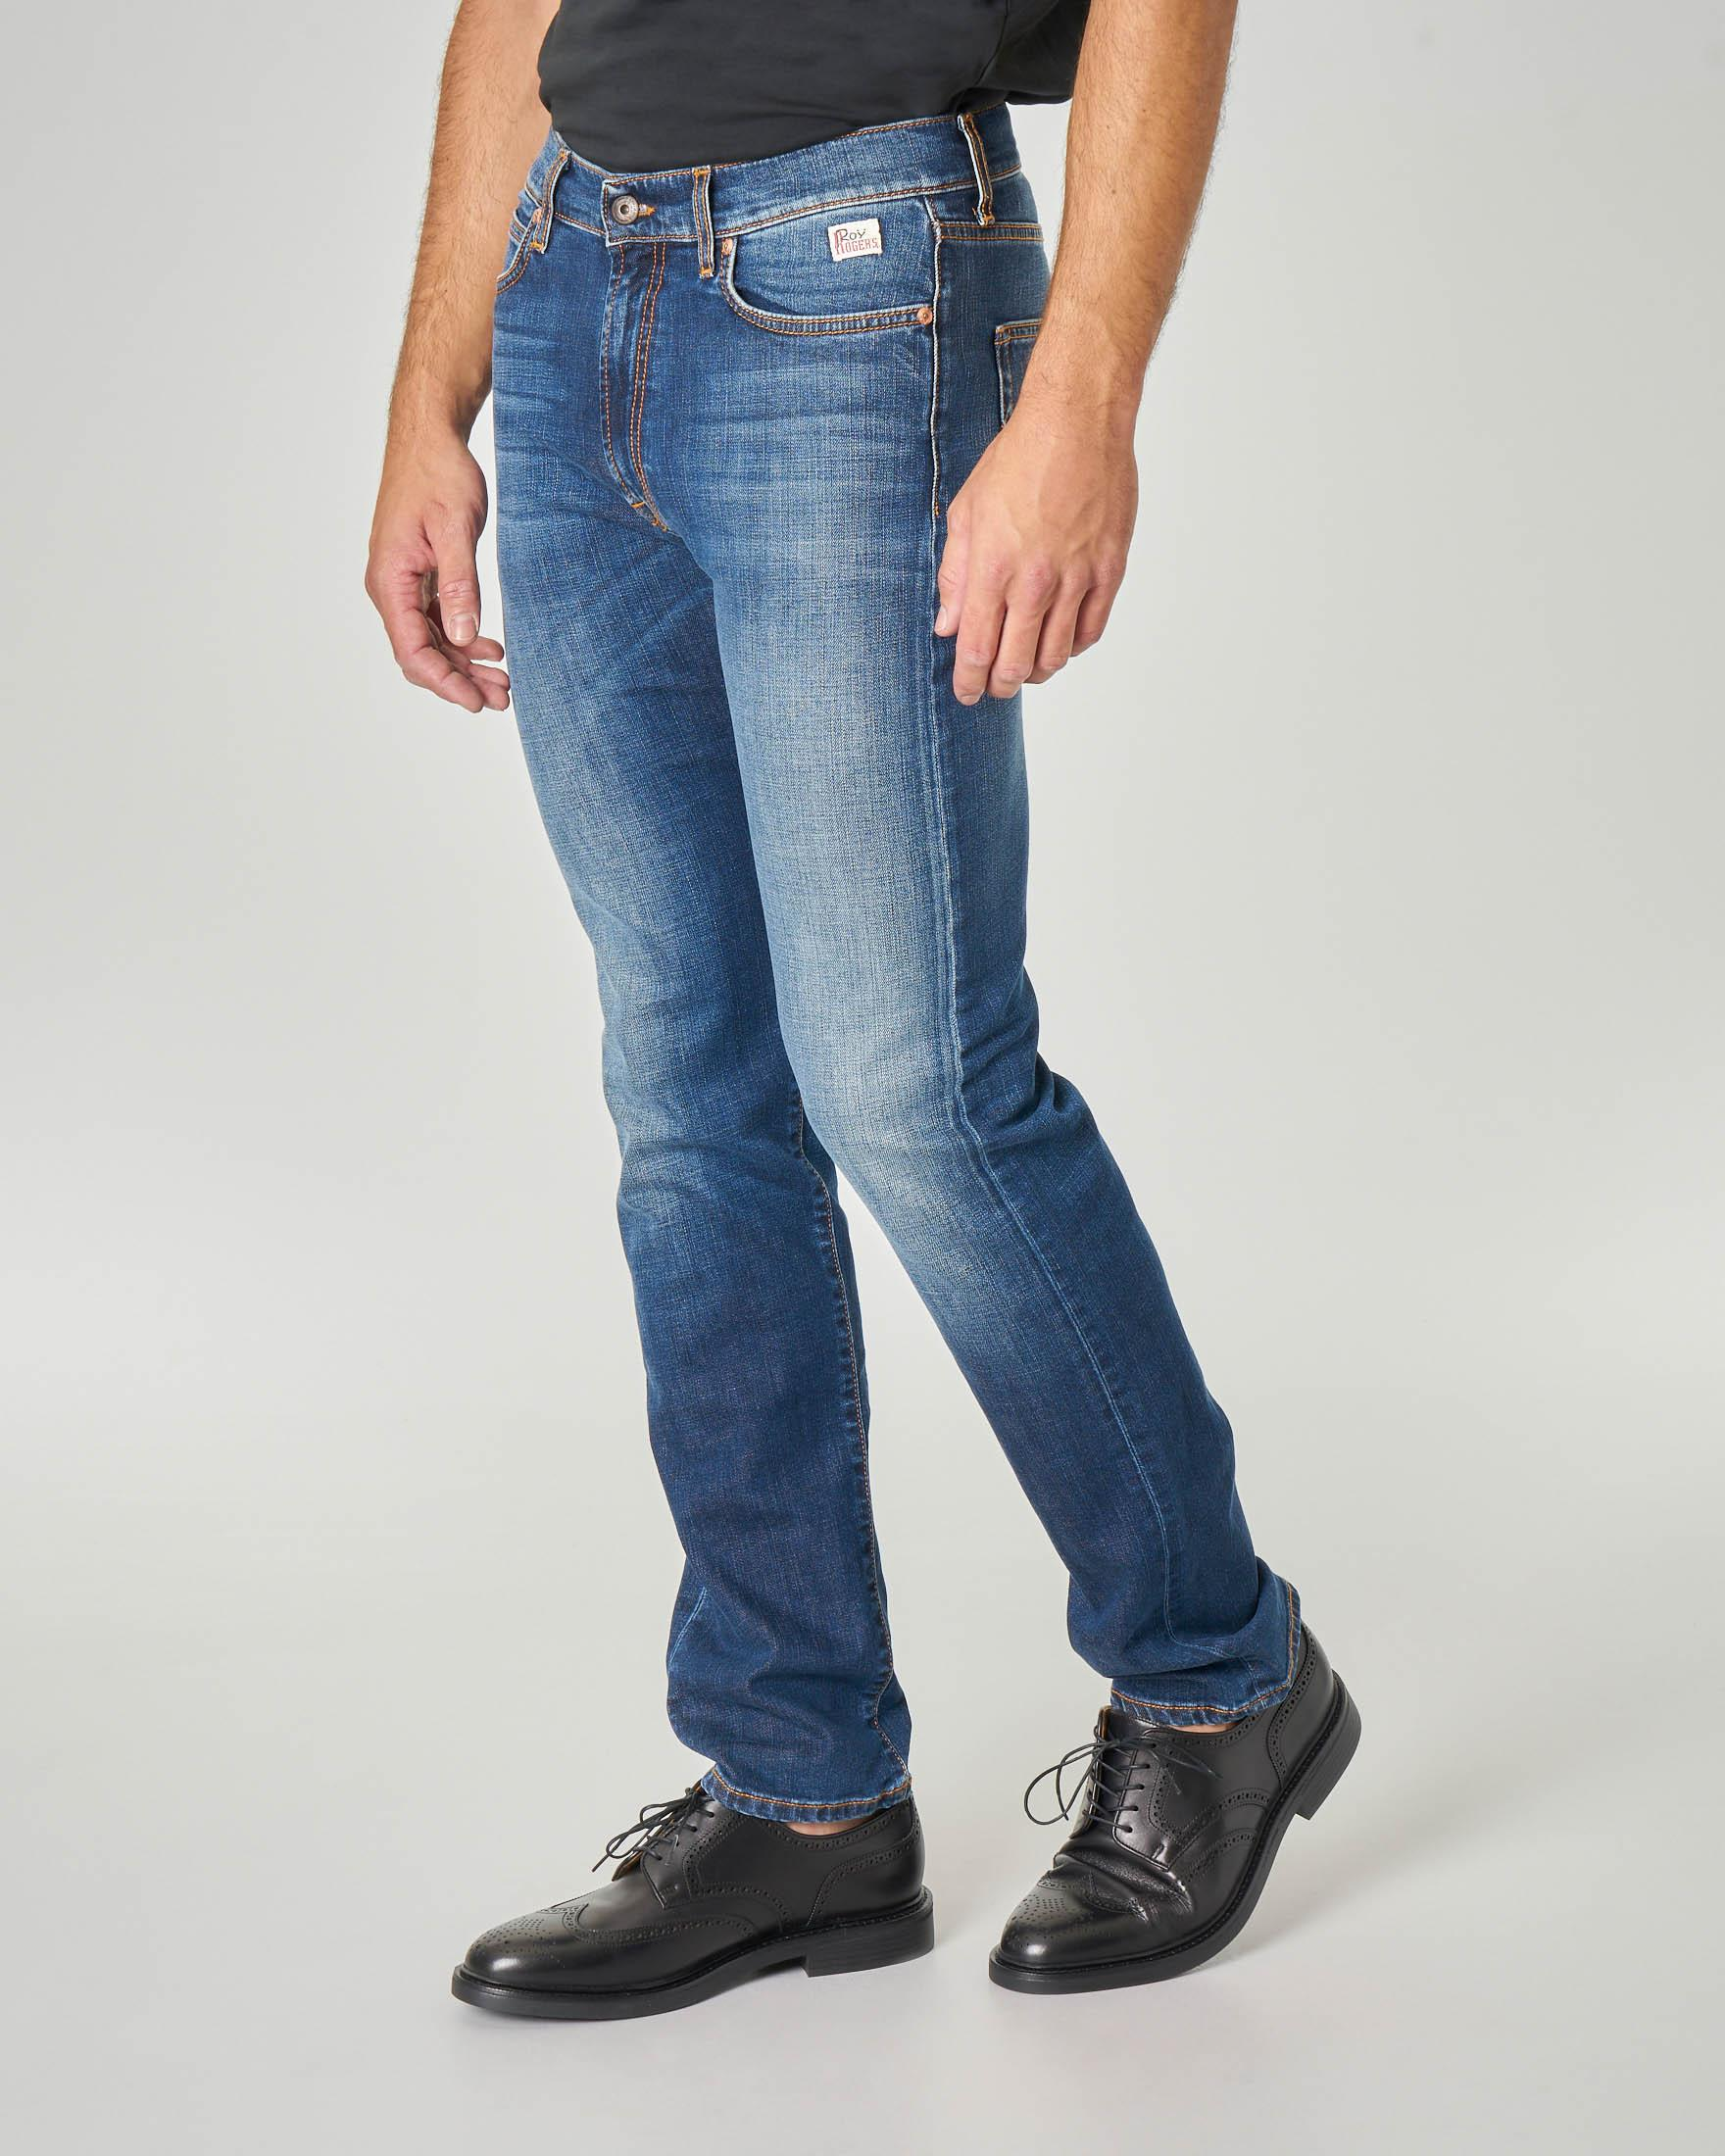 Jeans 927 Carlin lavaggio super stone wash